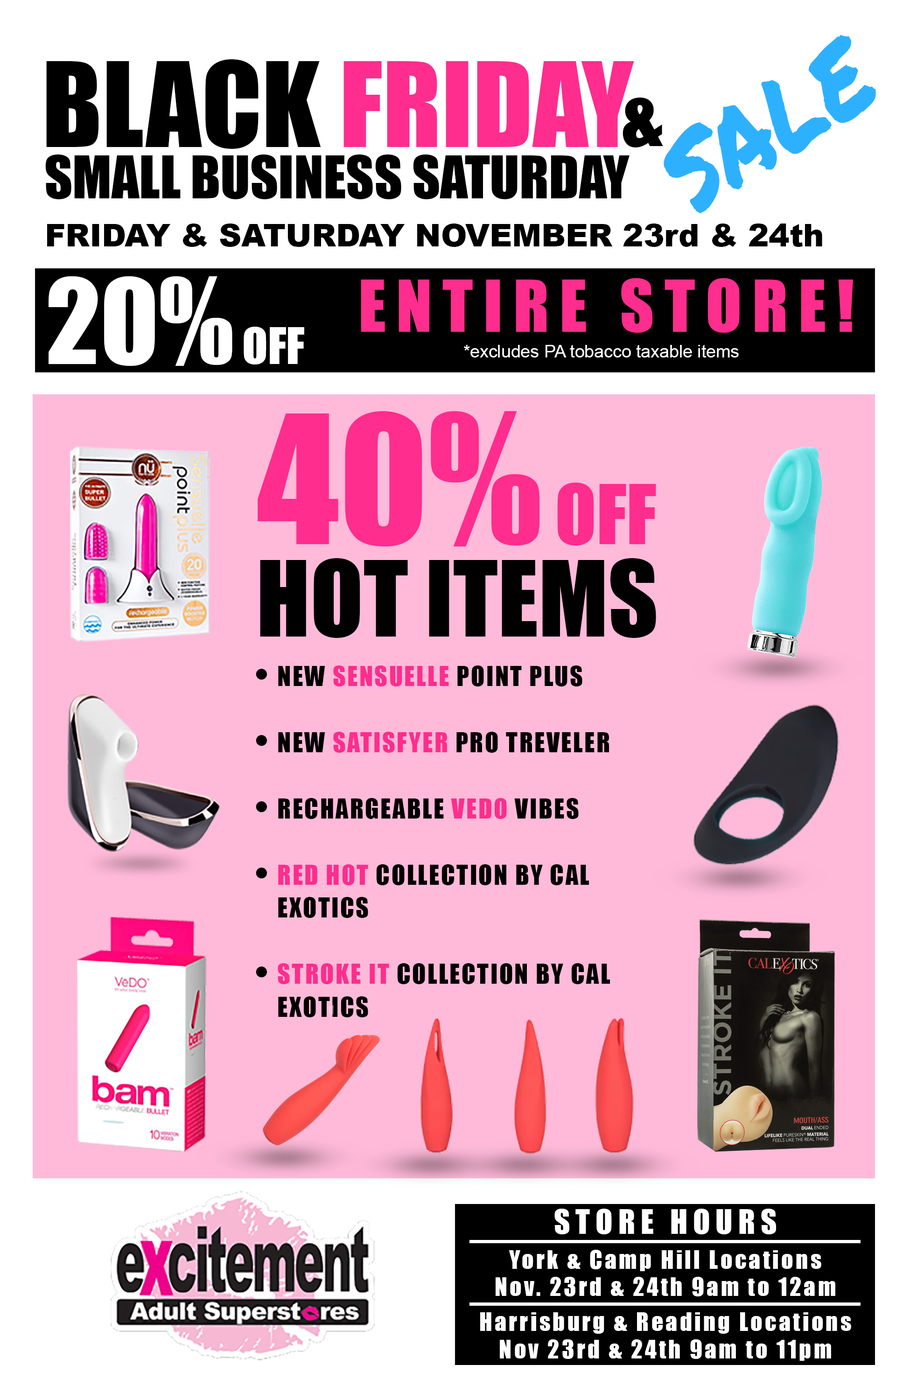 Excitement Black Friday / Small Business Saturday deals- 20 to 40% off throughout the entire store!